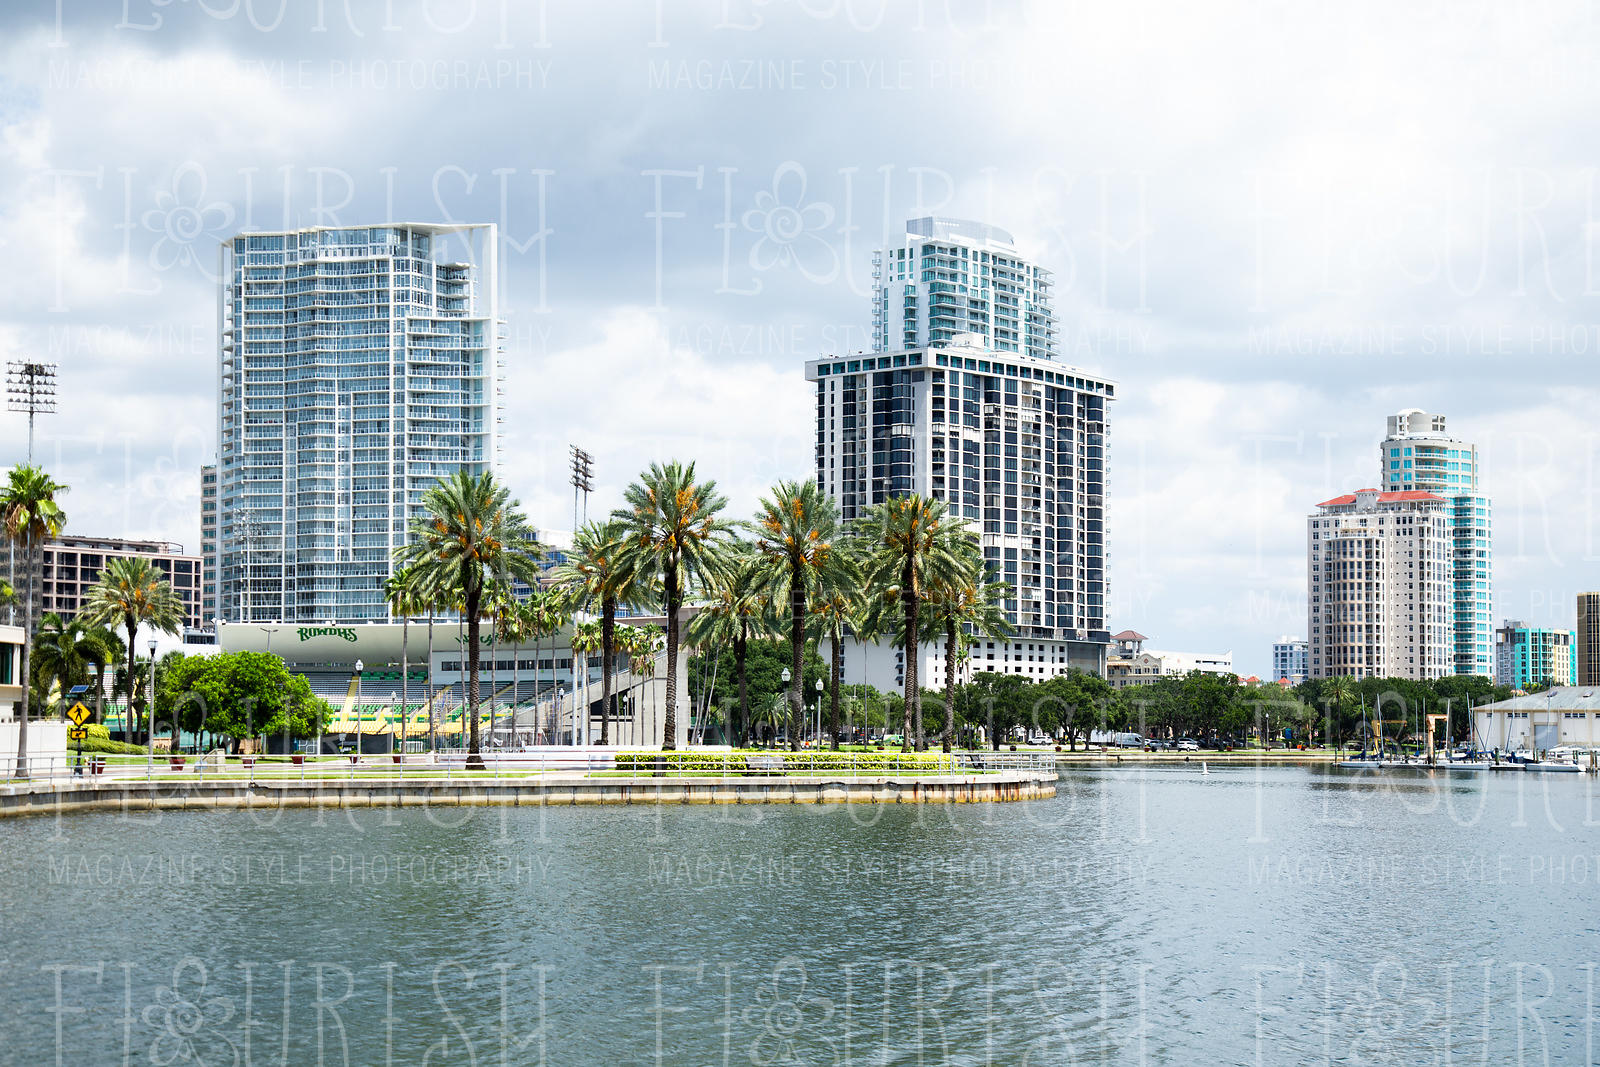 Architectural_St_Pete_Waterfront_Skyline-2